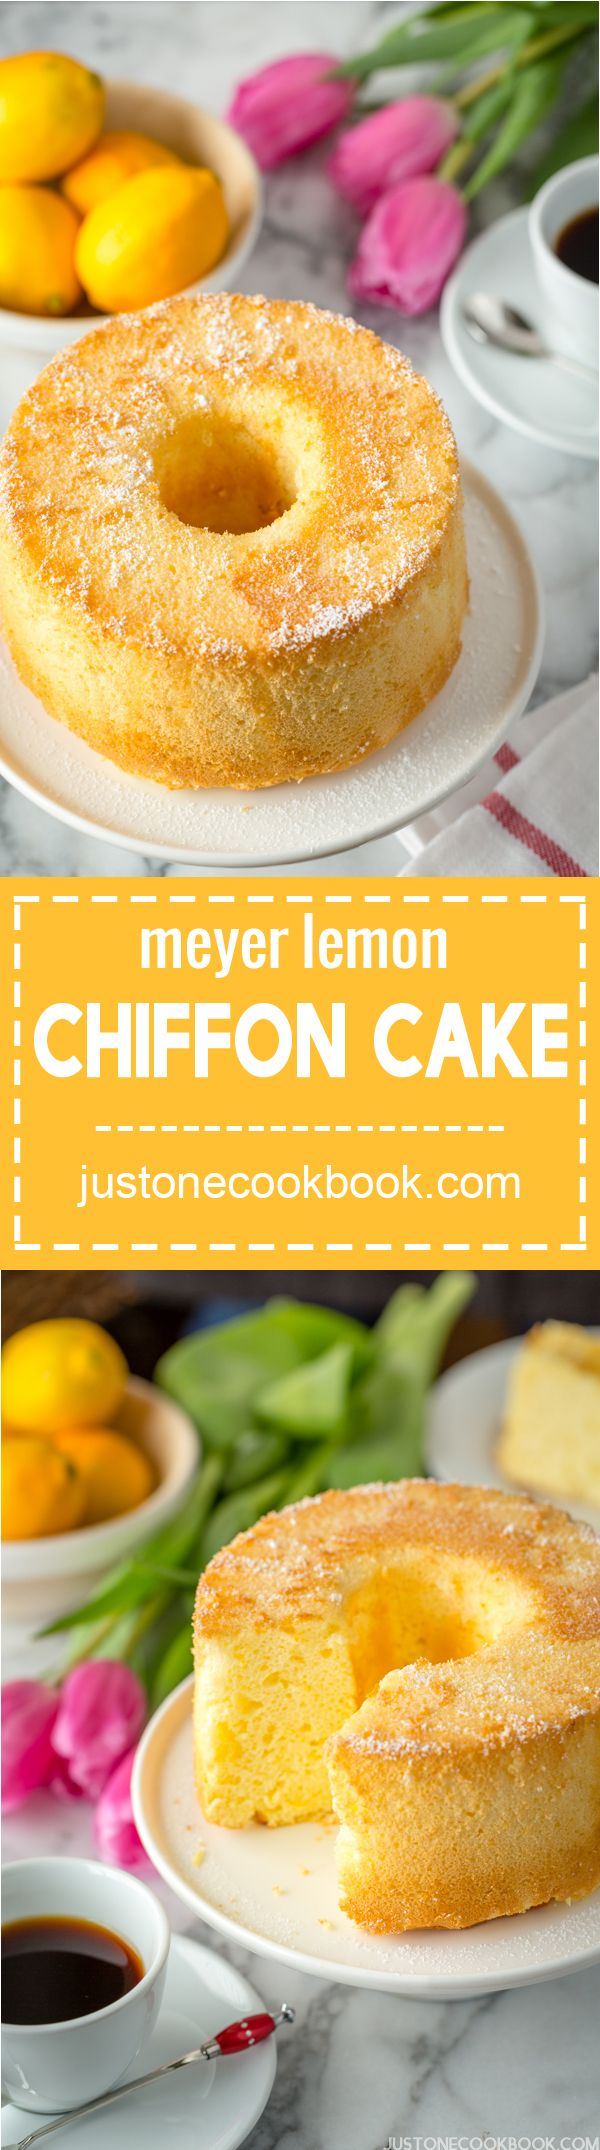 Meyer Lemon Chiffon Cake | Easy Japanese Recipes at JustOneCookbook.com